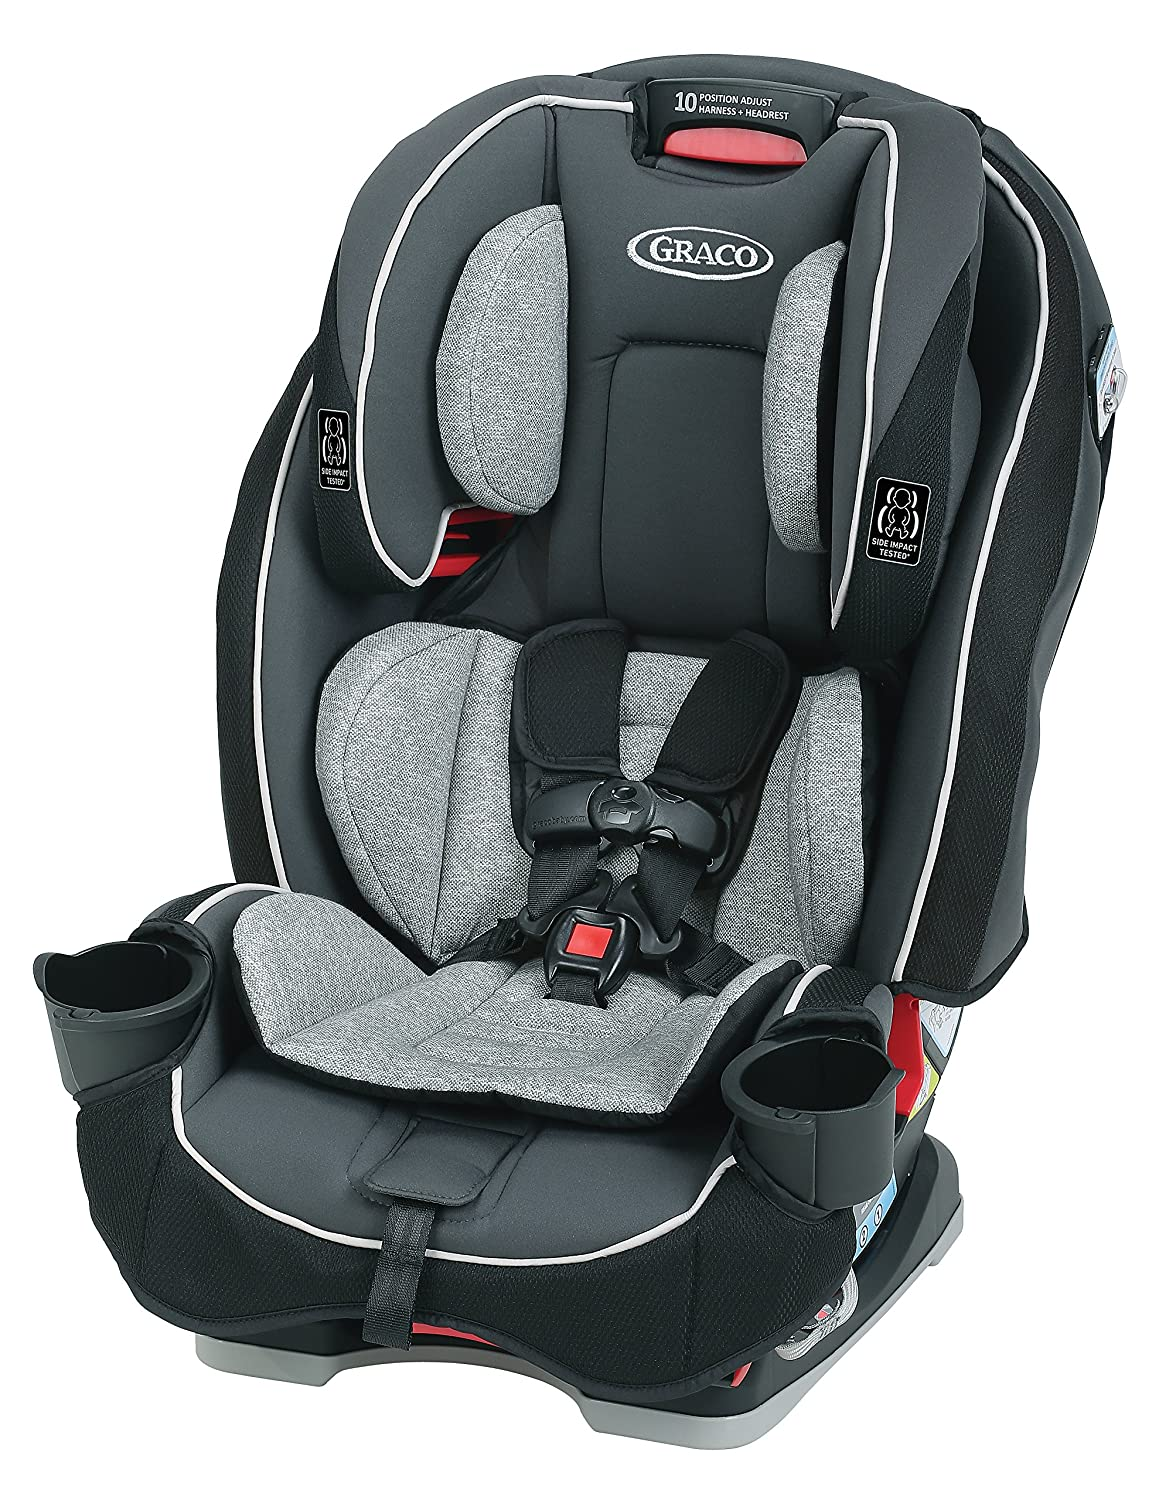 Graco SlimFit 3 in 1 Convertible Car